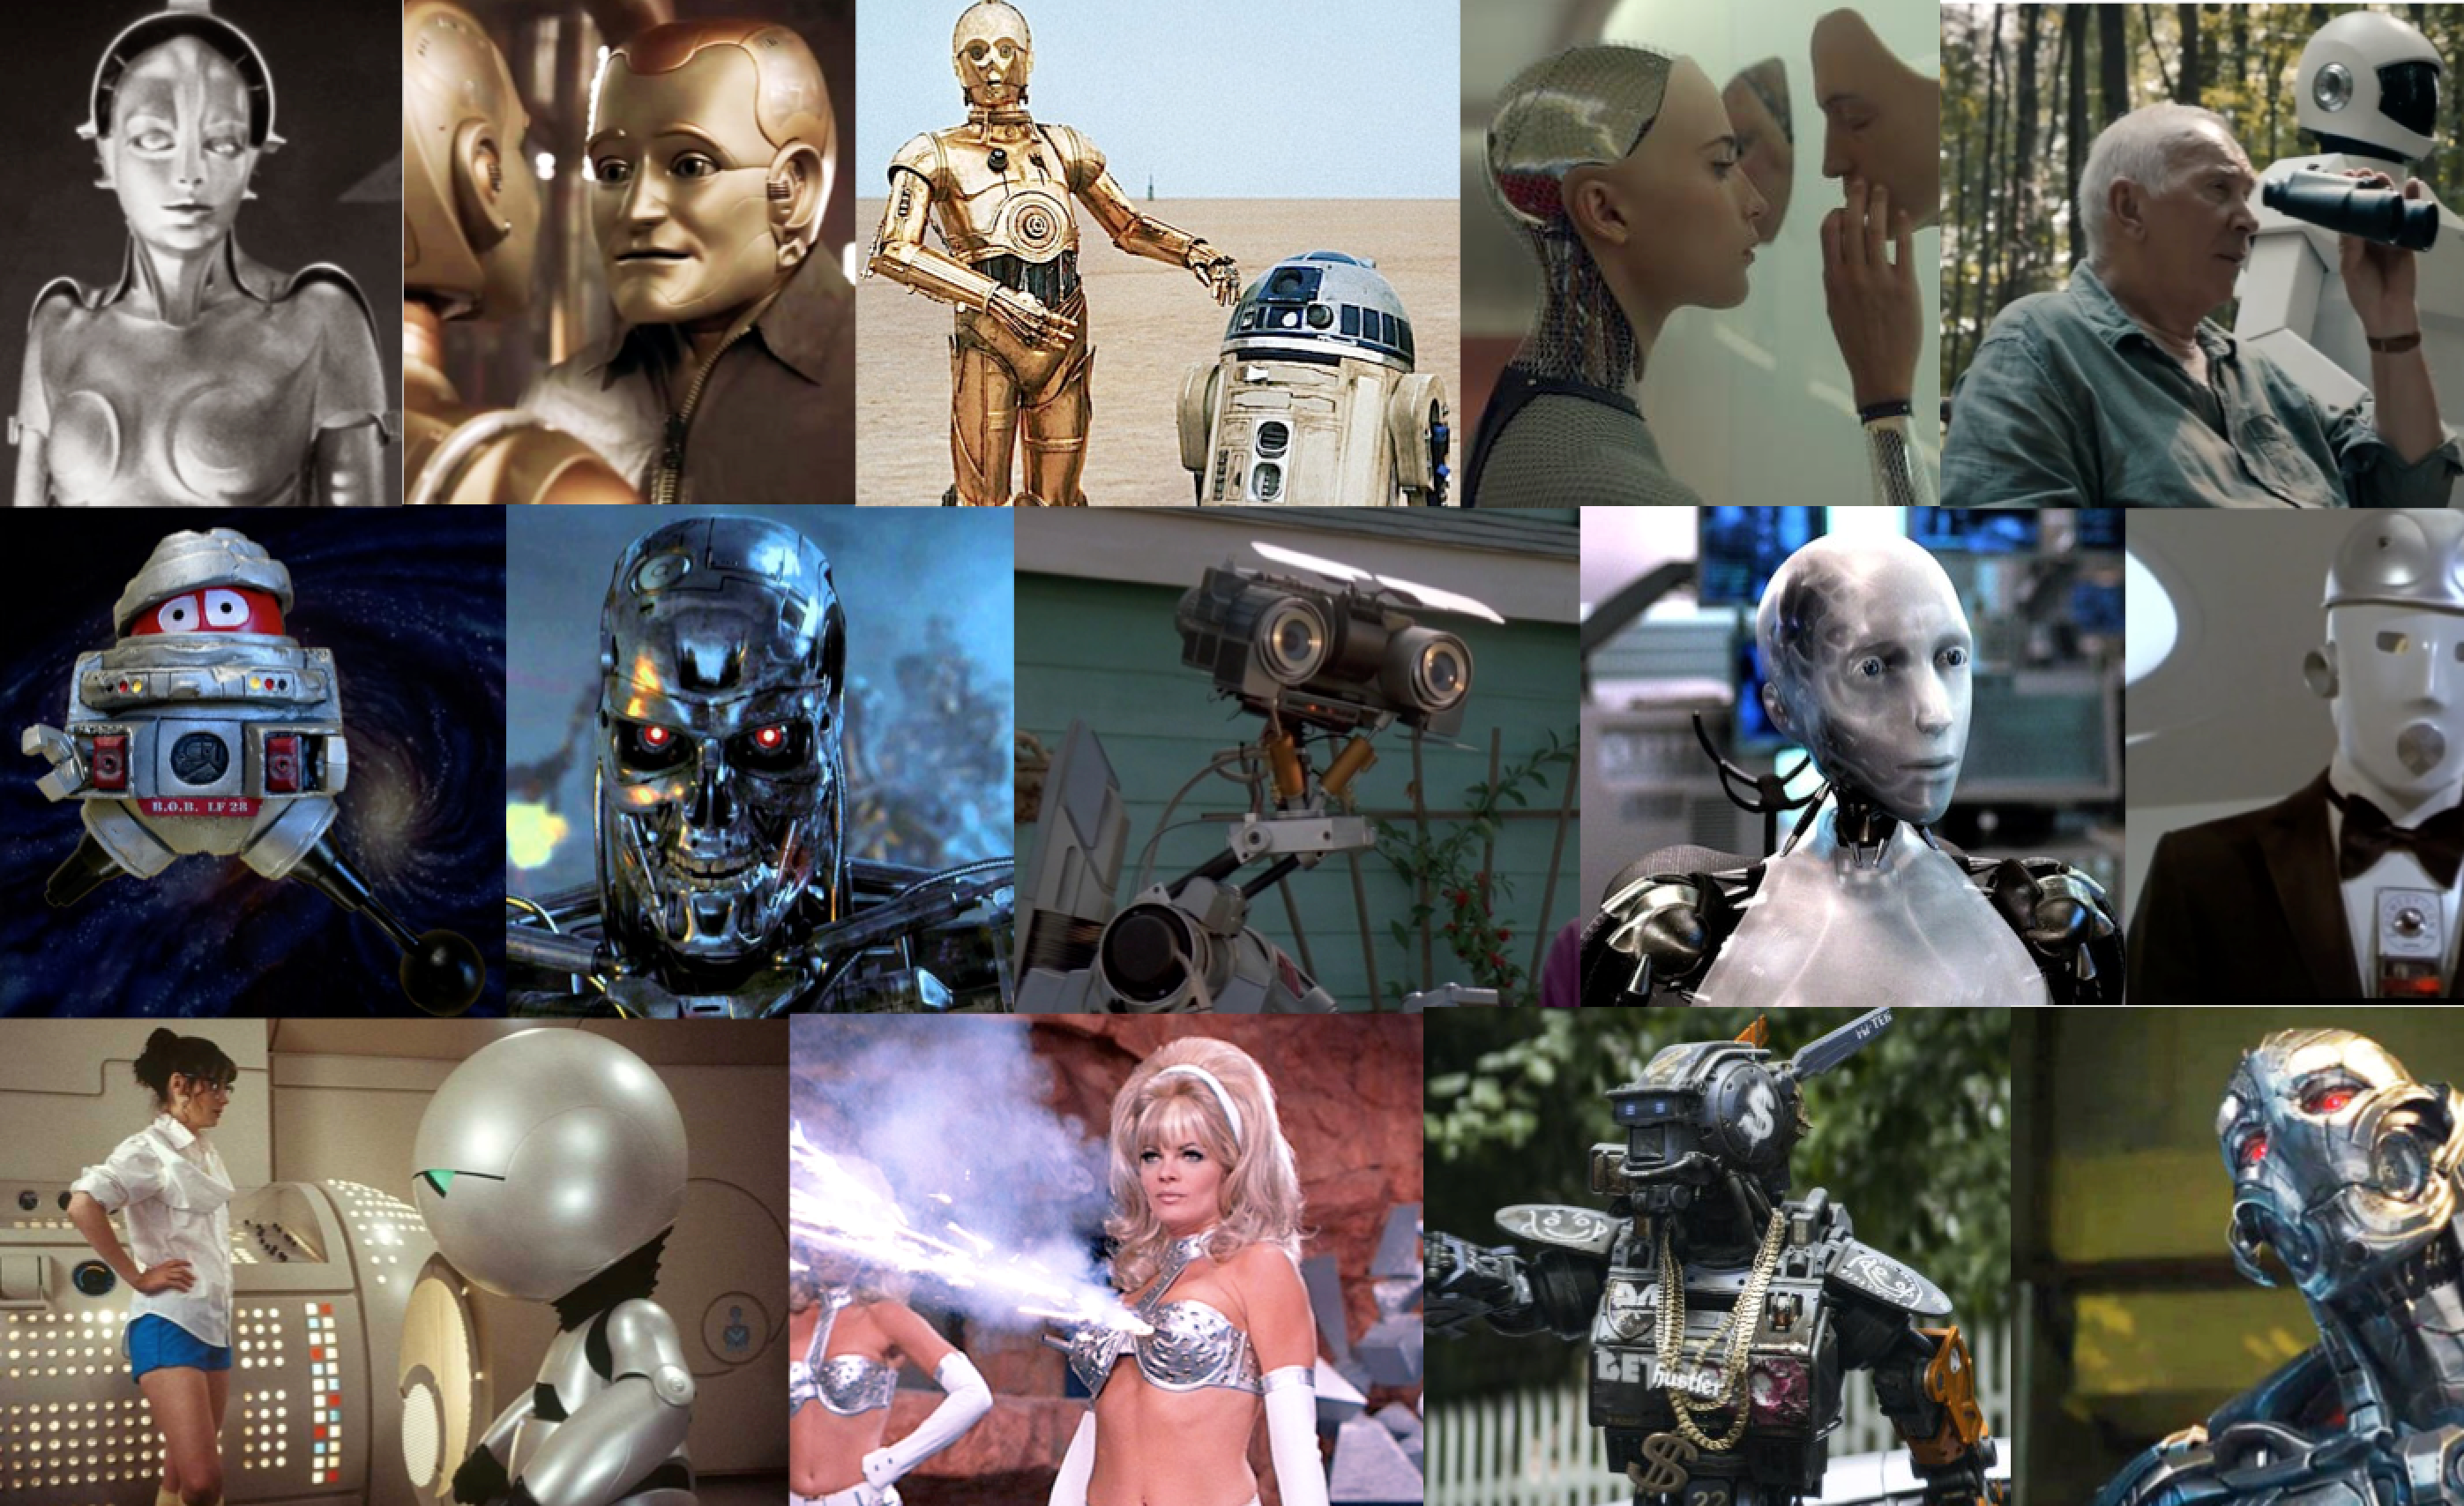 10 Greatest Films About Robots The Movies According To Short Circuit Me Quora